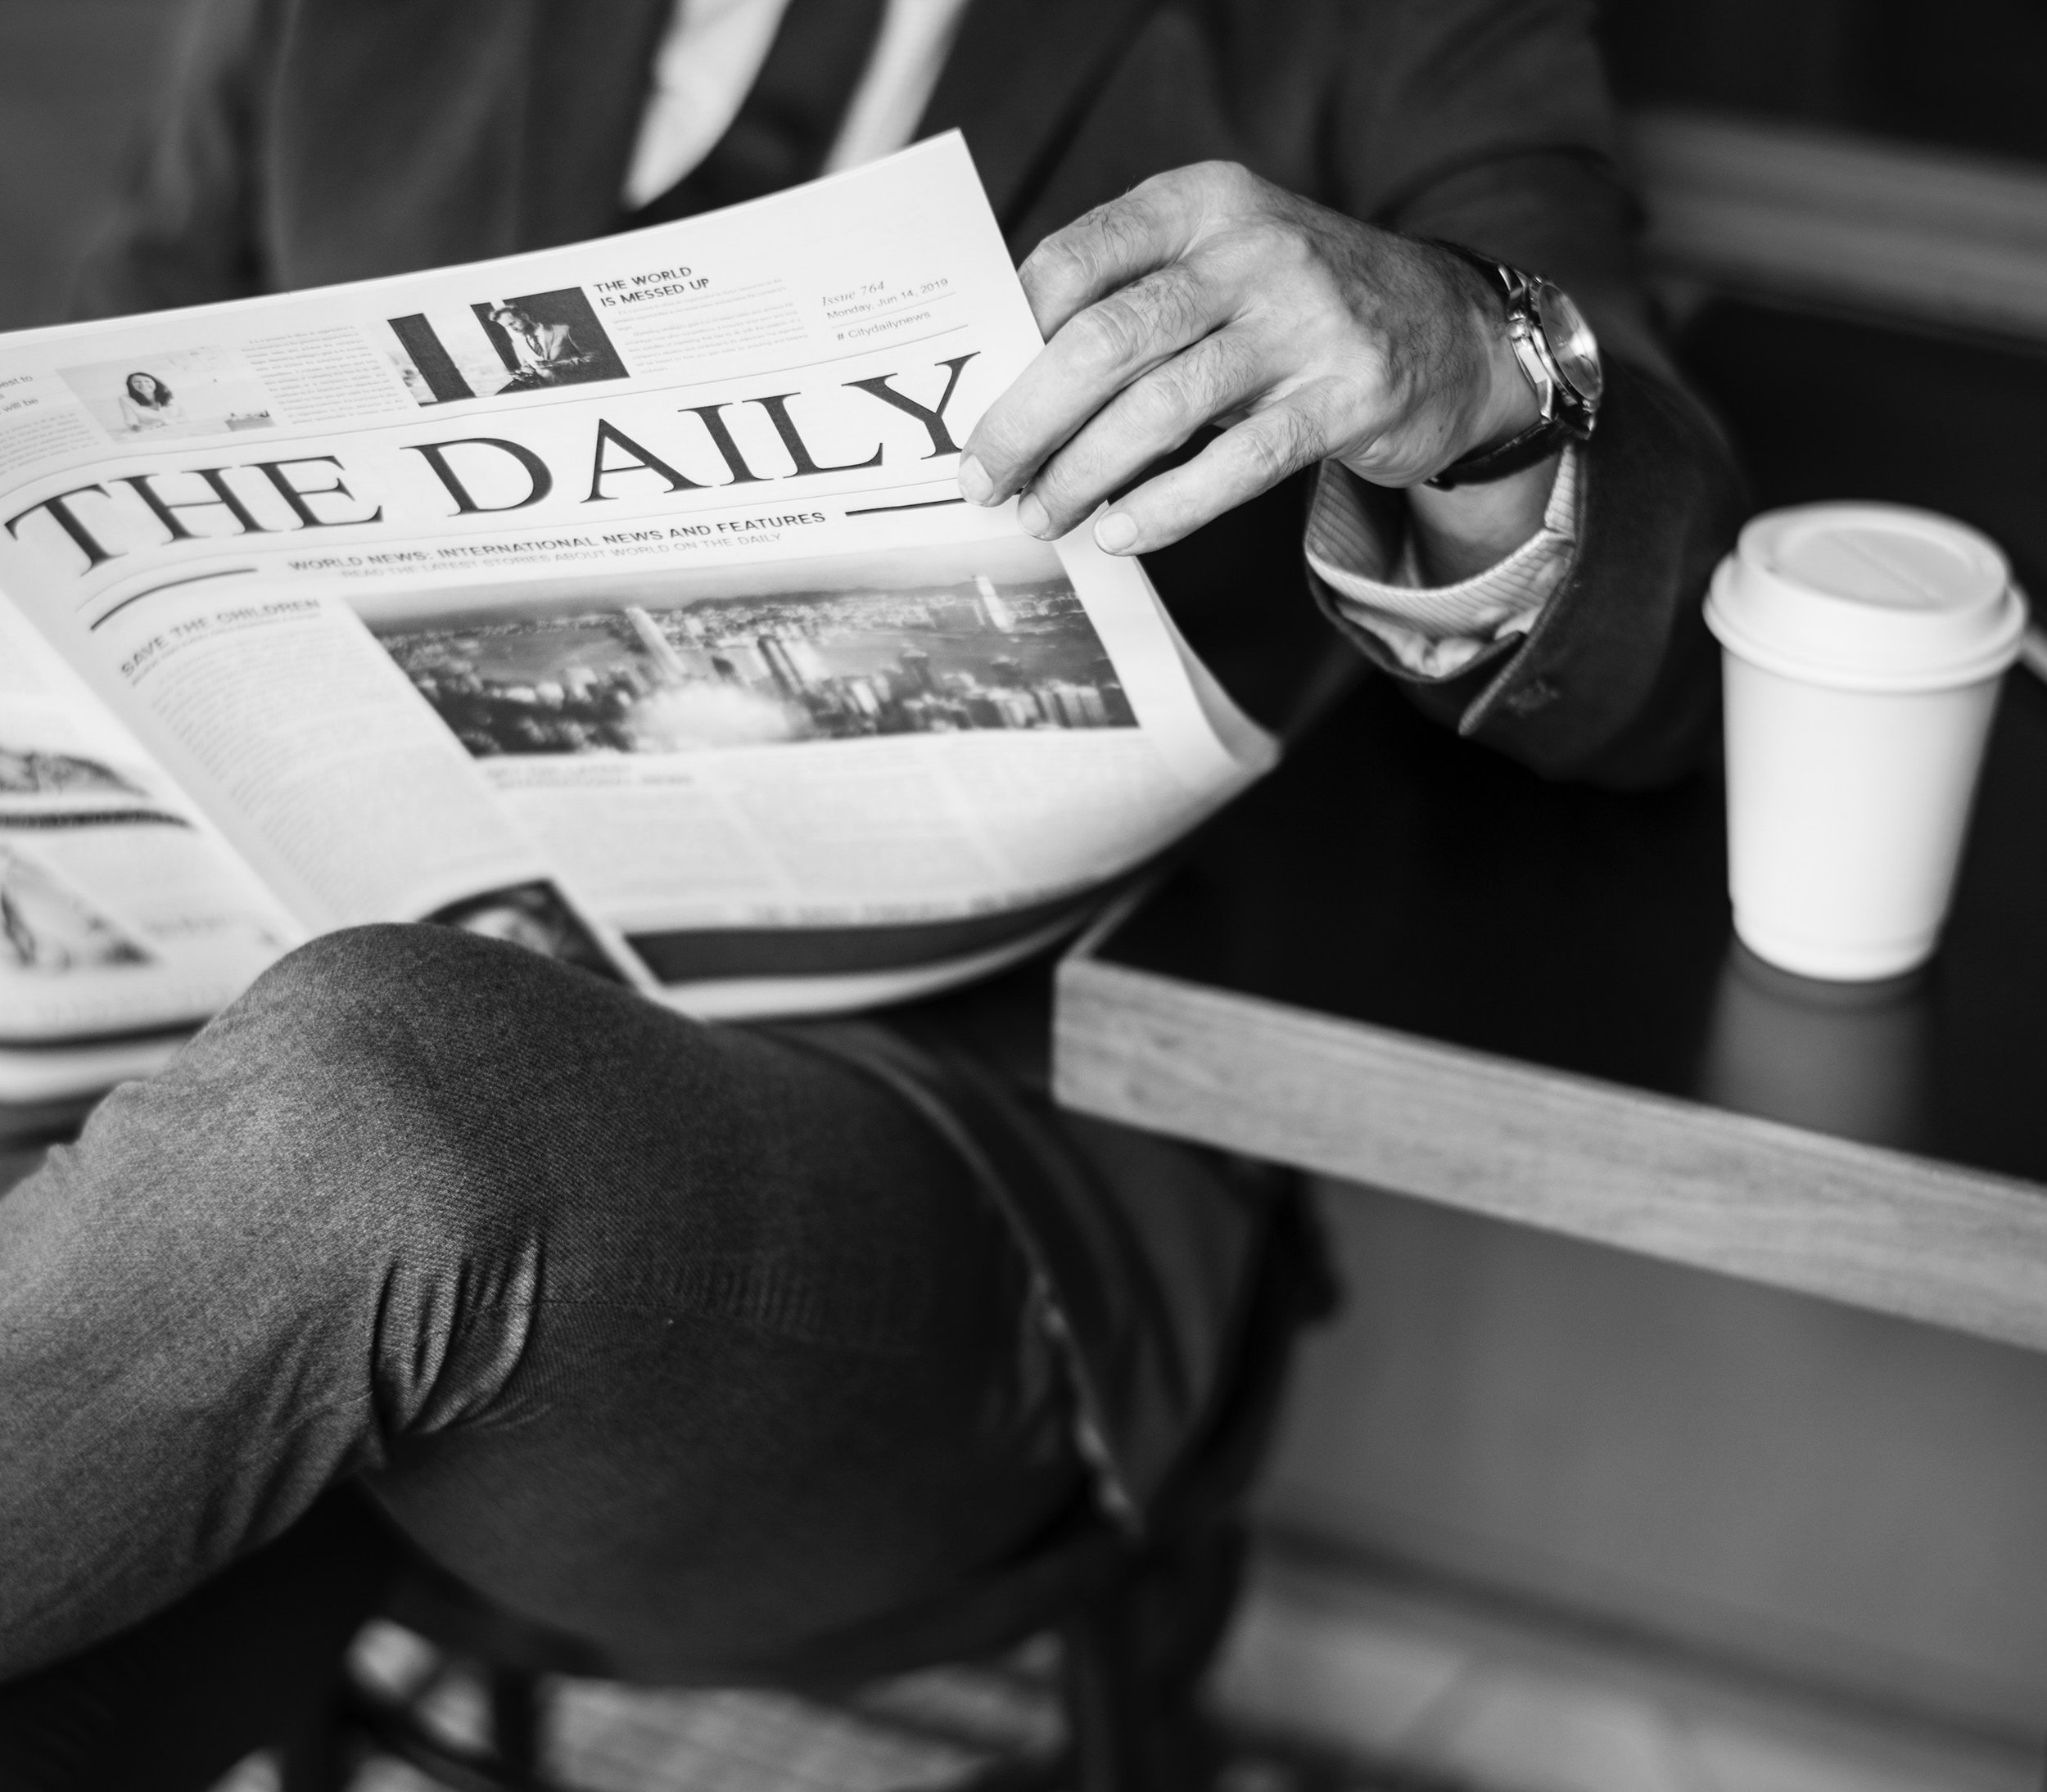 A man reads a newspaper with a cup of coffee on the table next to him